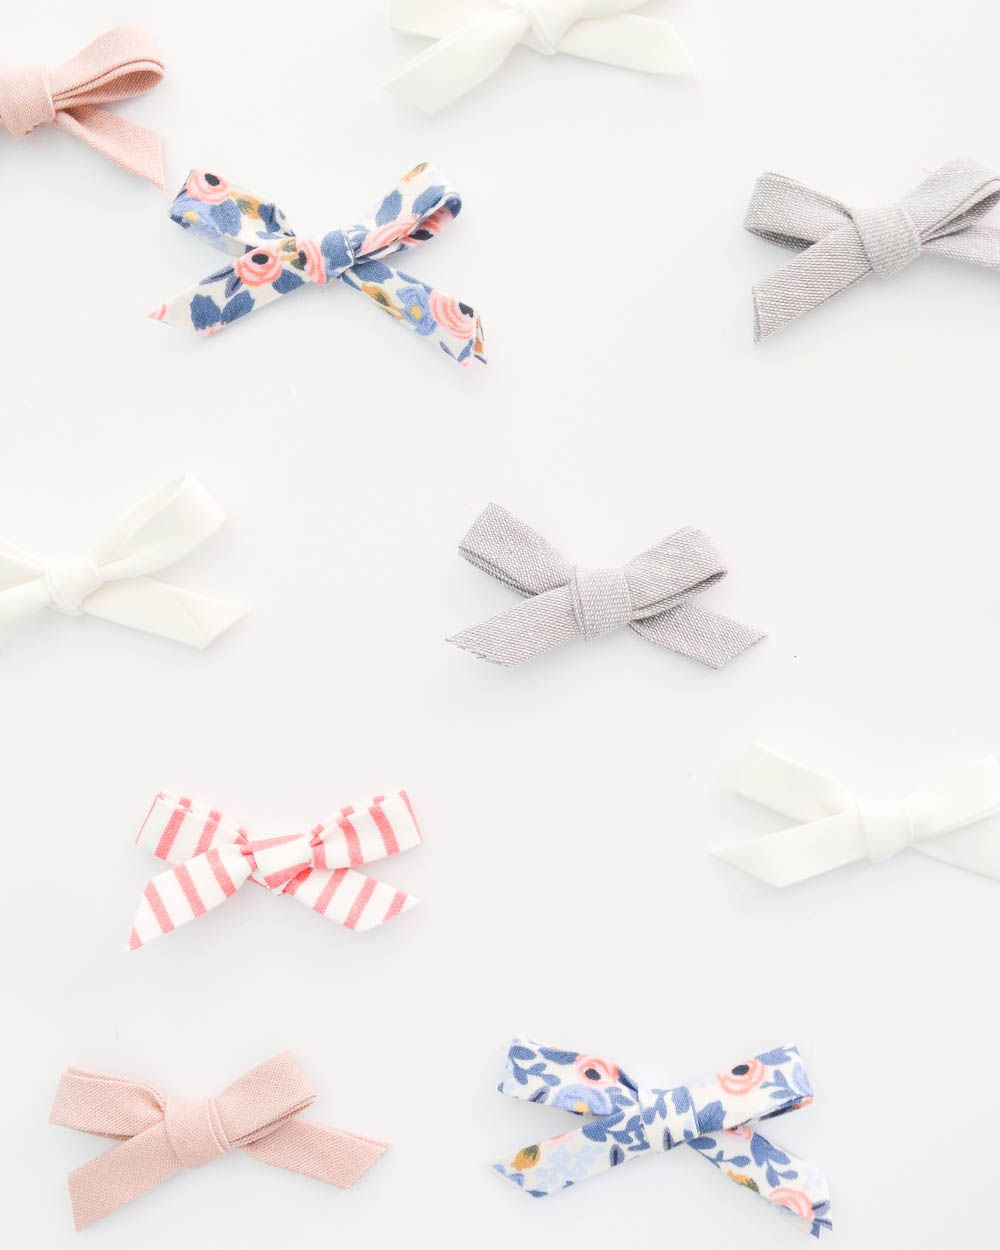 2 Minute Simple No-Sew Hair Bow Headbands #babyheadbands